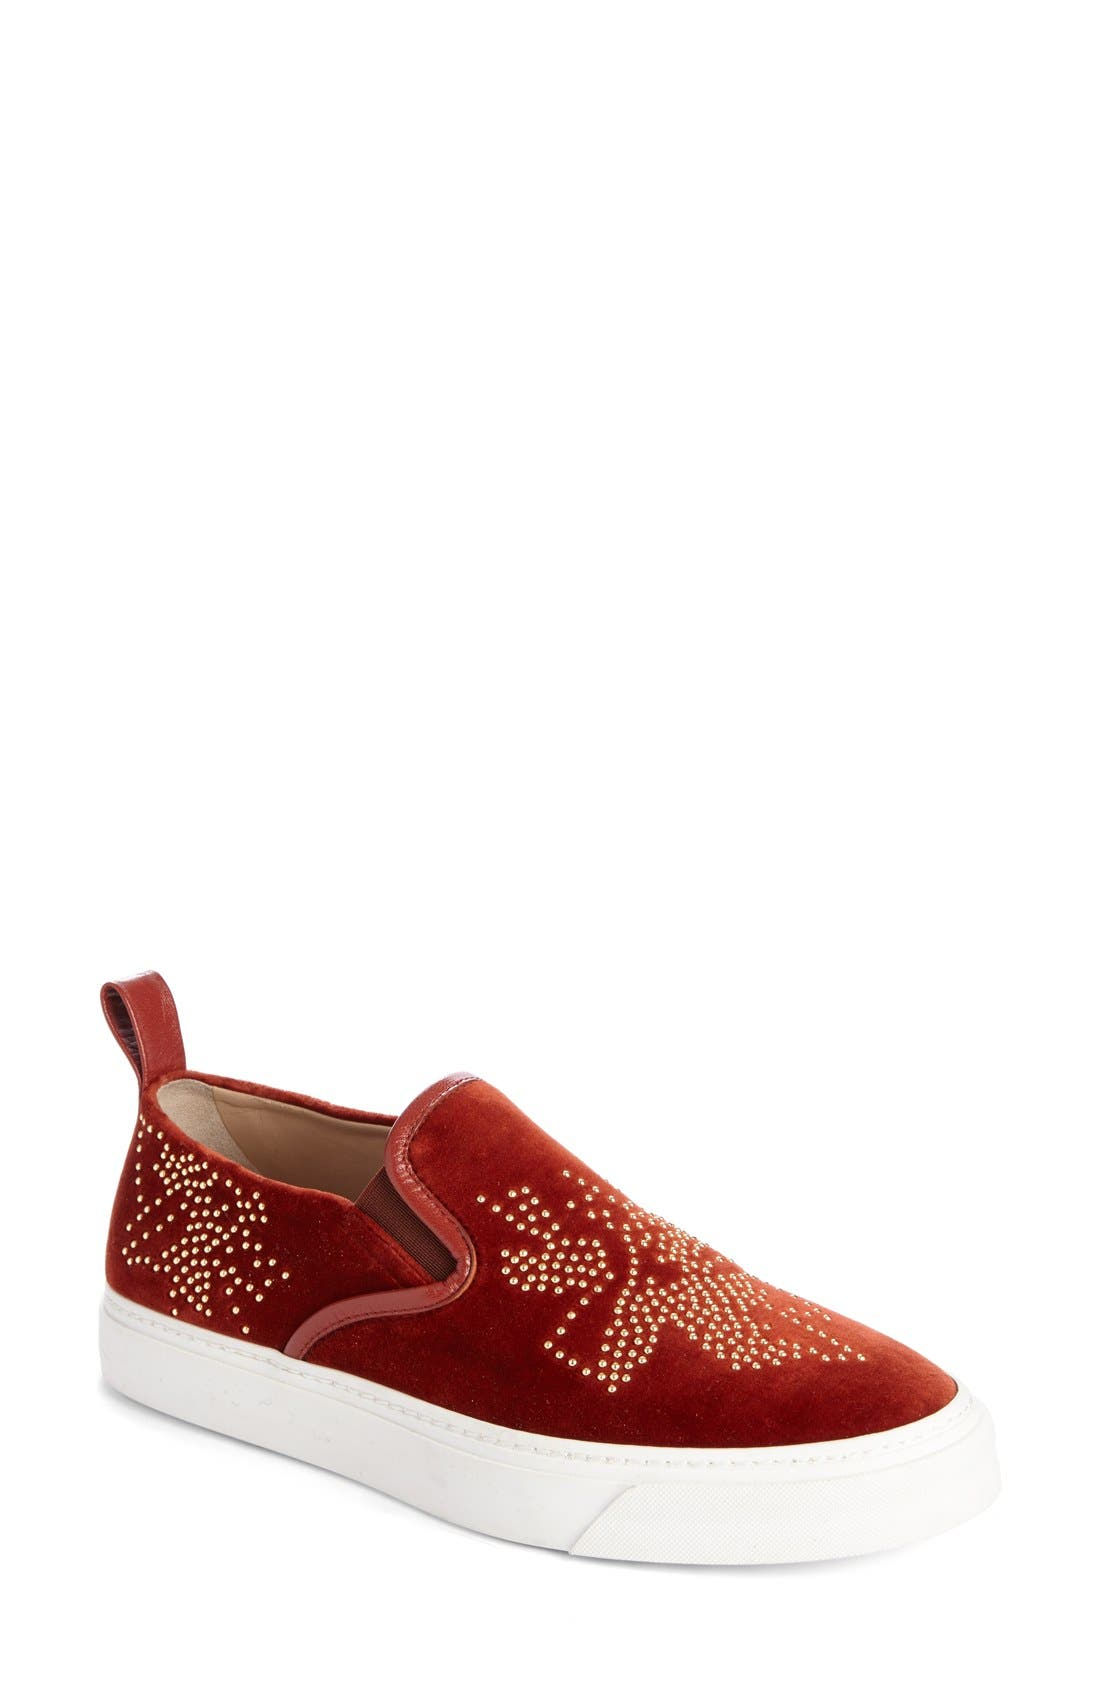 Main Image - Chloé 'Ivy' Studded Slip-On Sneaker (Women)